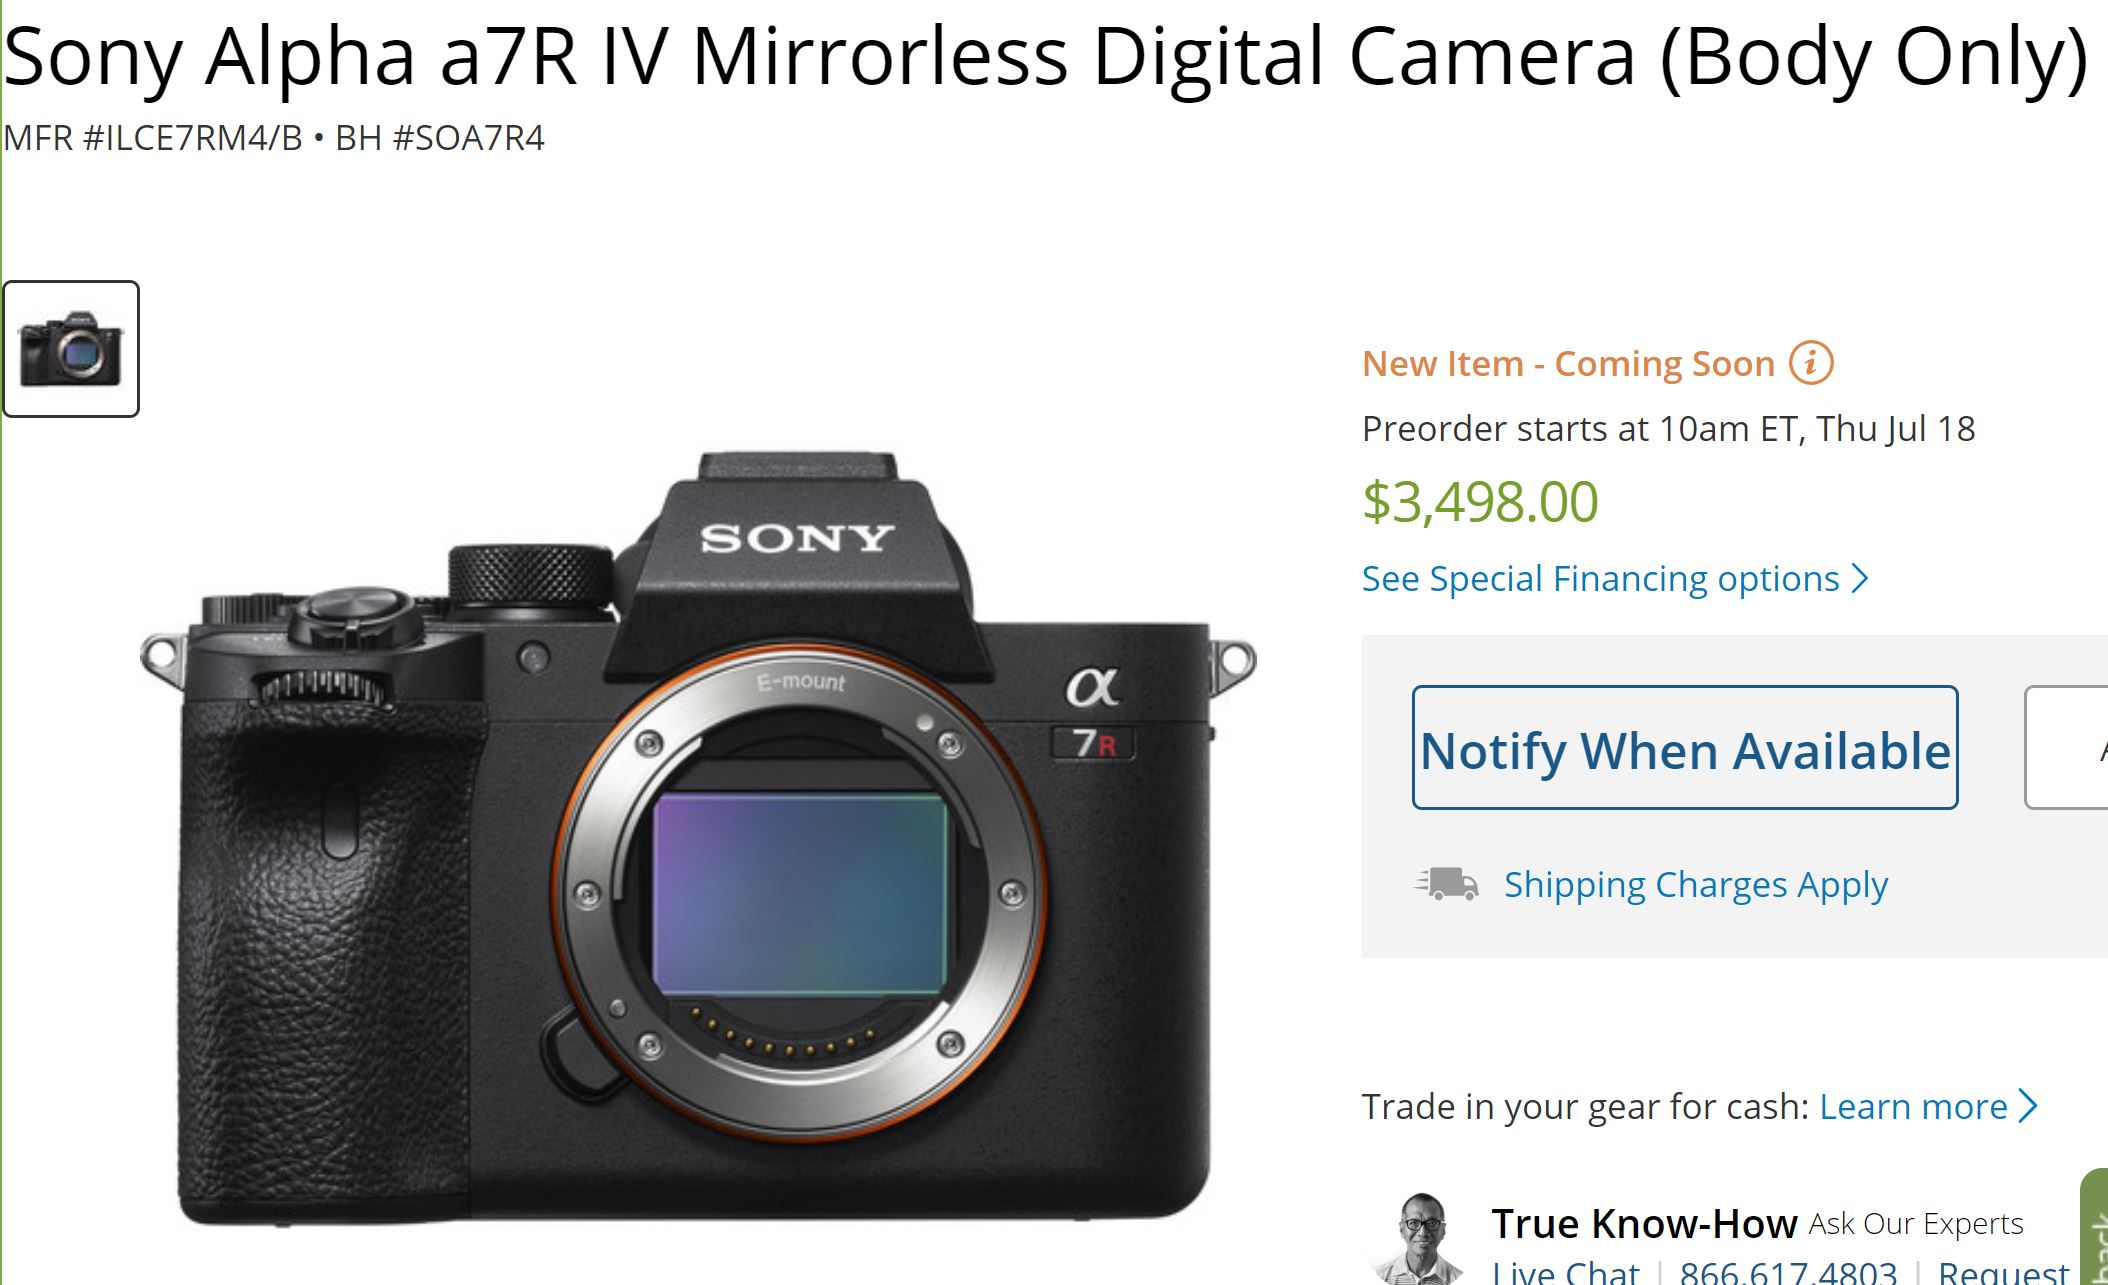 Sony a7R IV Announced, Price $3,498, Release Date in